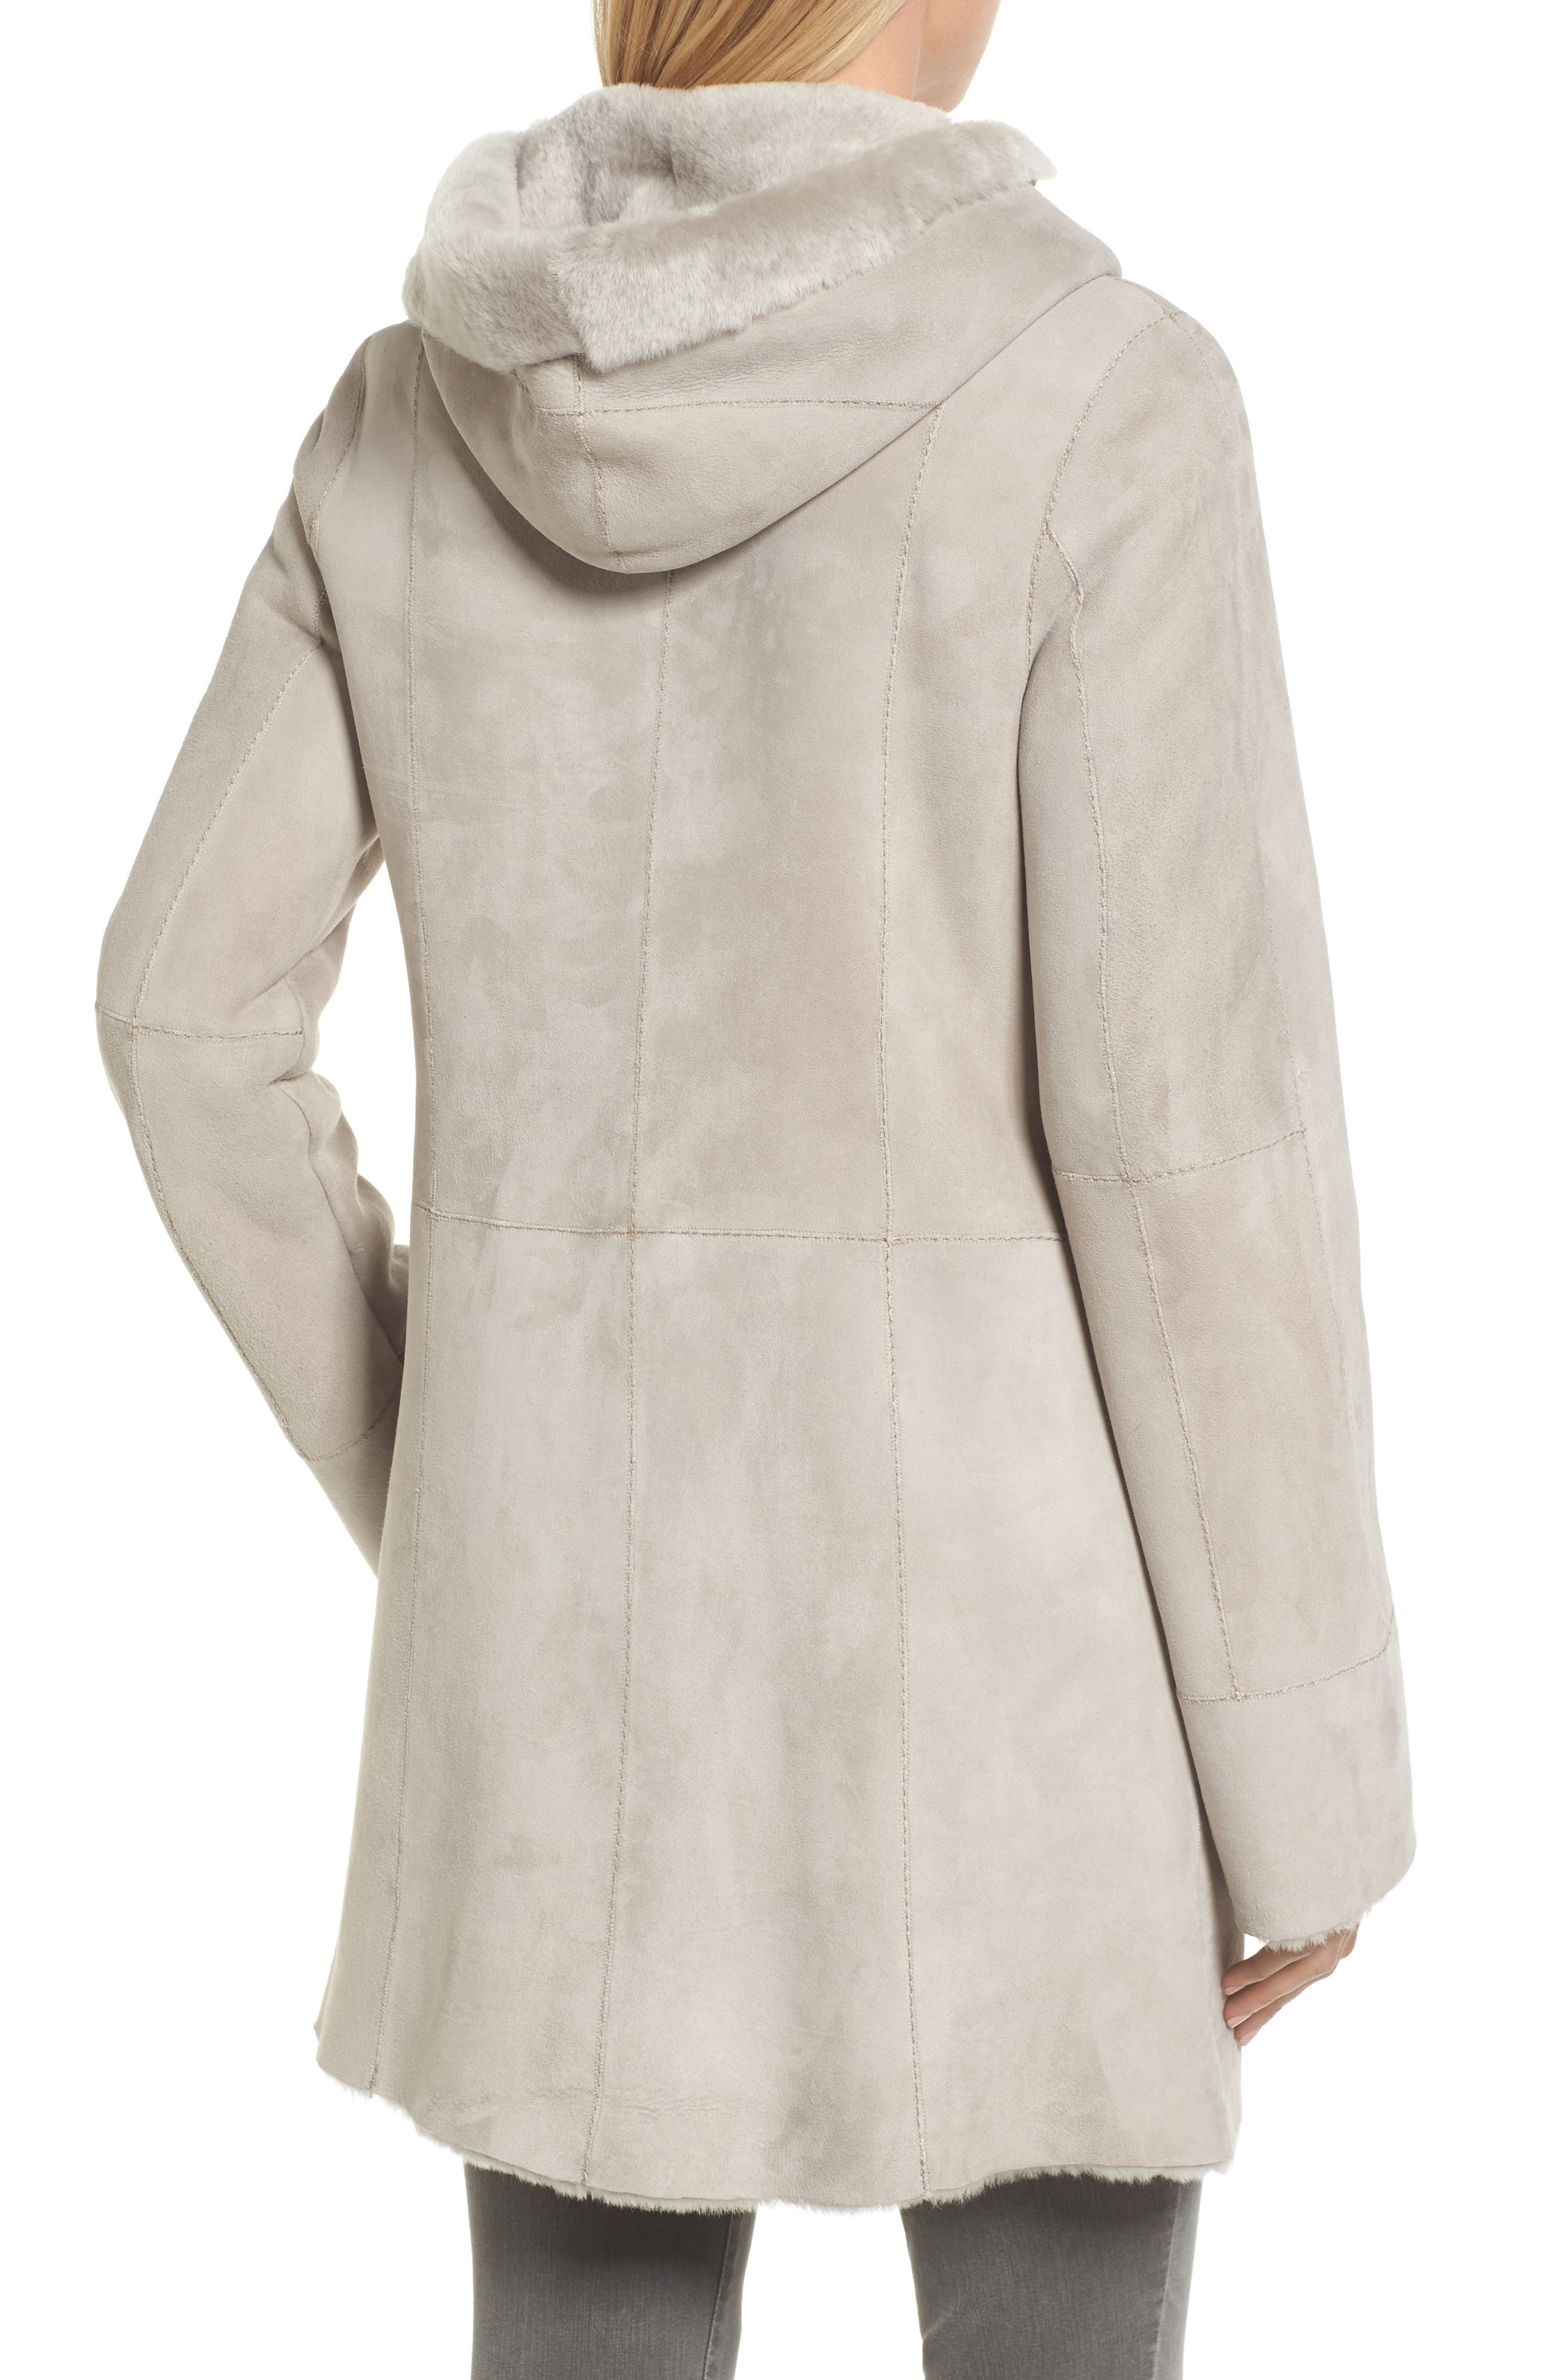 Patch Genuine Shearling Coat,                             Alternate thumbnail 2, color,                             Light Grey